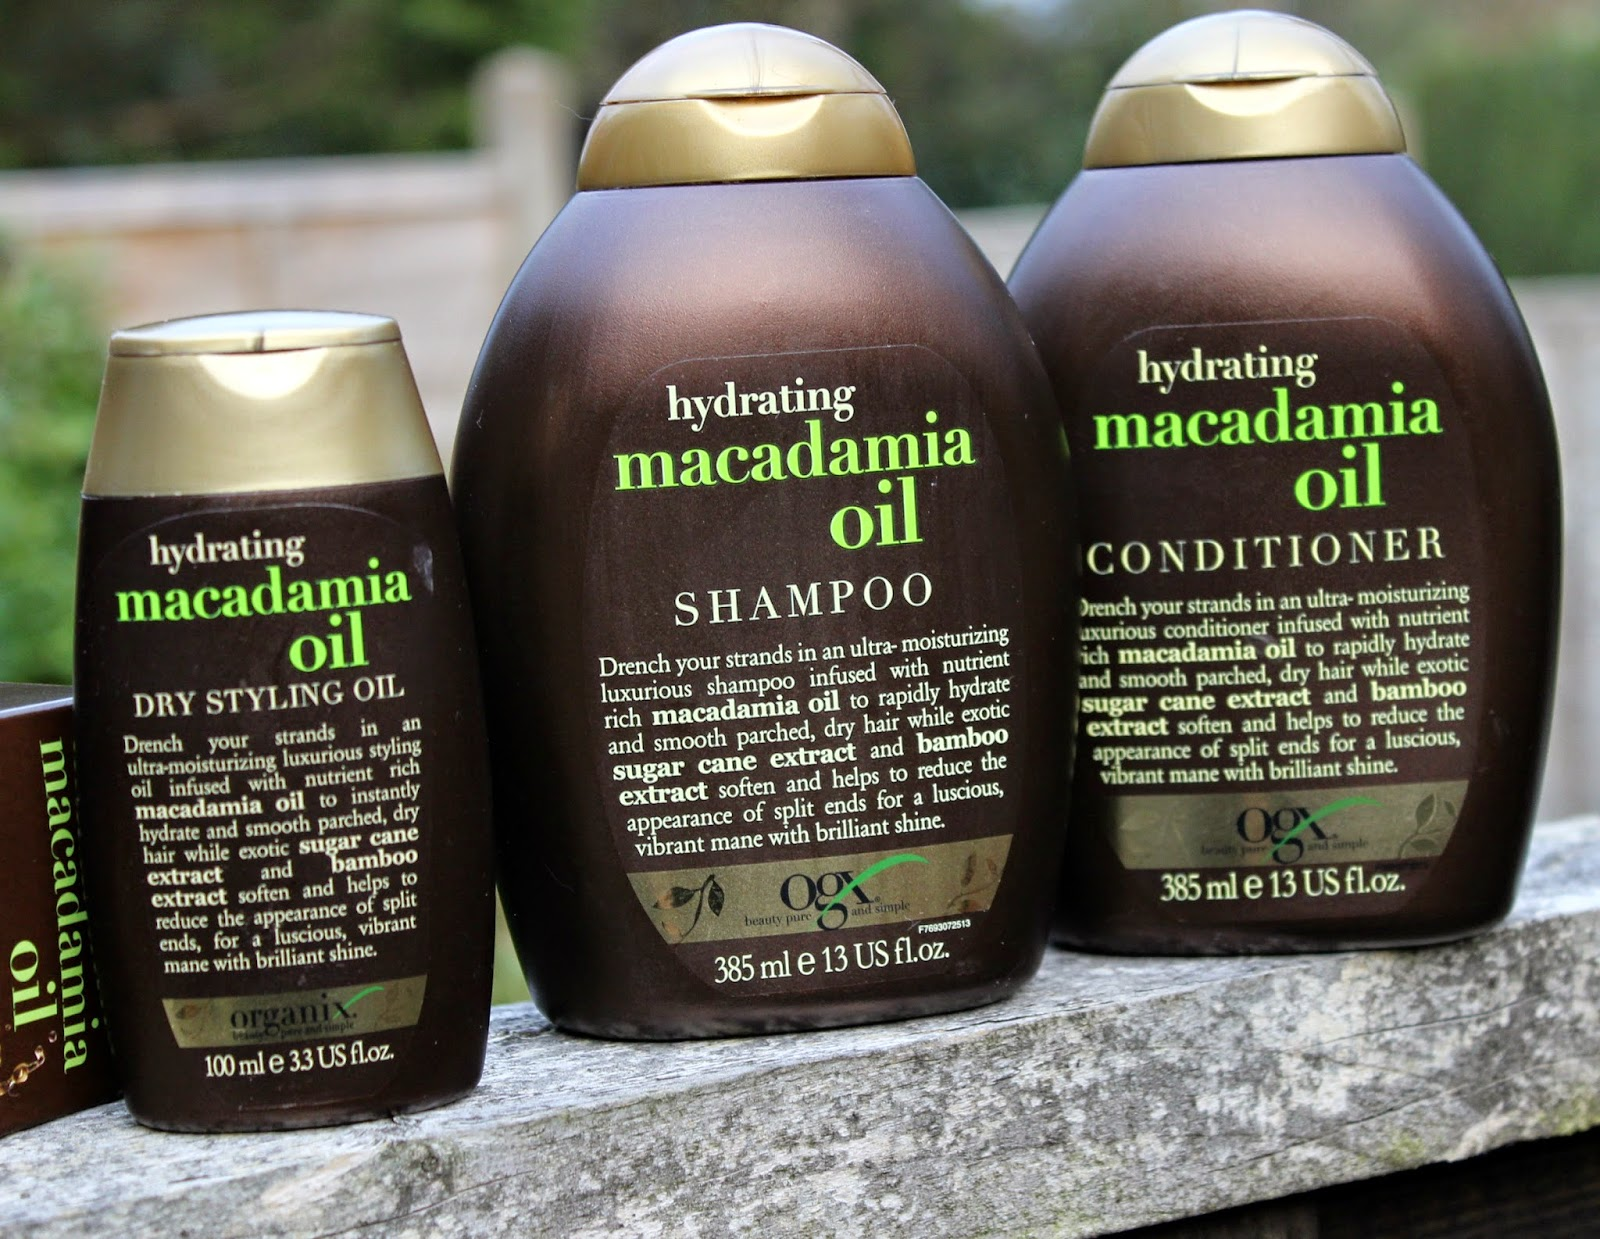 A picure of the OGX Hydrating Macadamia Oil Shampoo, Conditioner and Dry Styling Oil